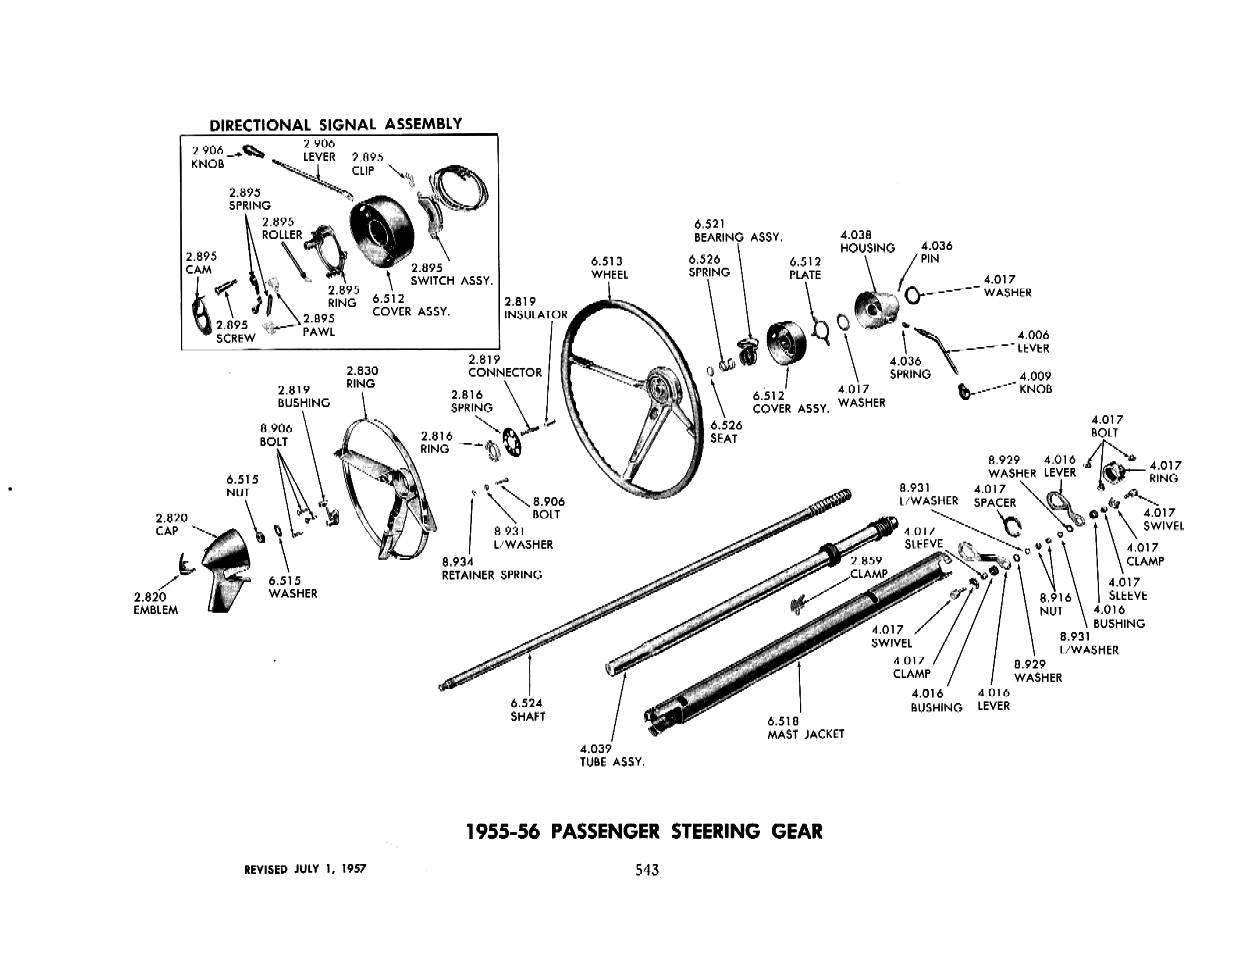 1966 chevrolet bel air wiring diagram automotive wiring diagrams